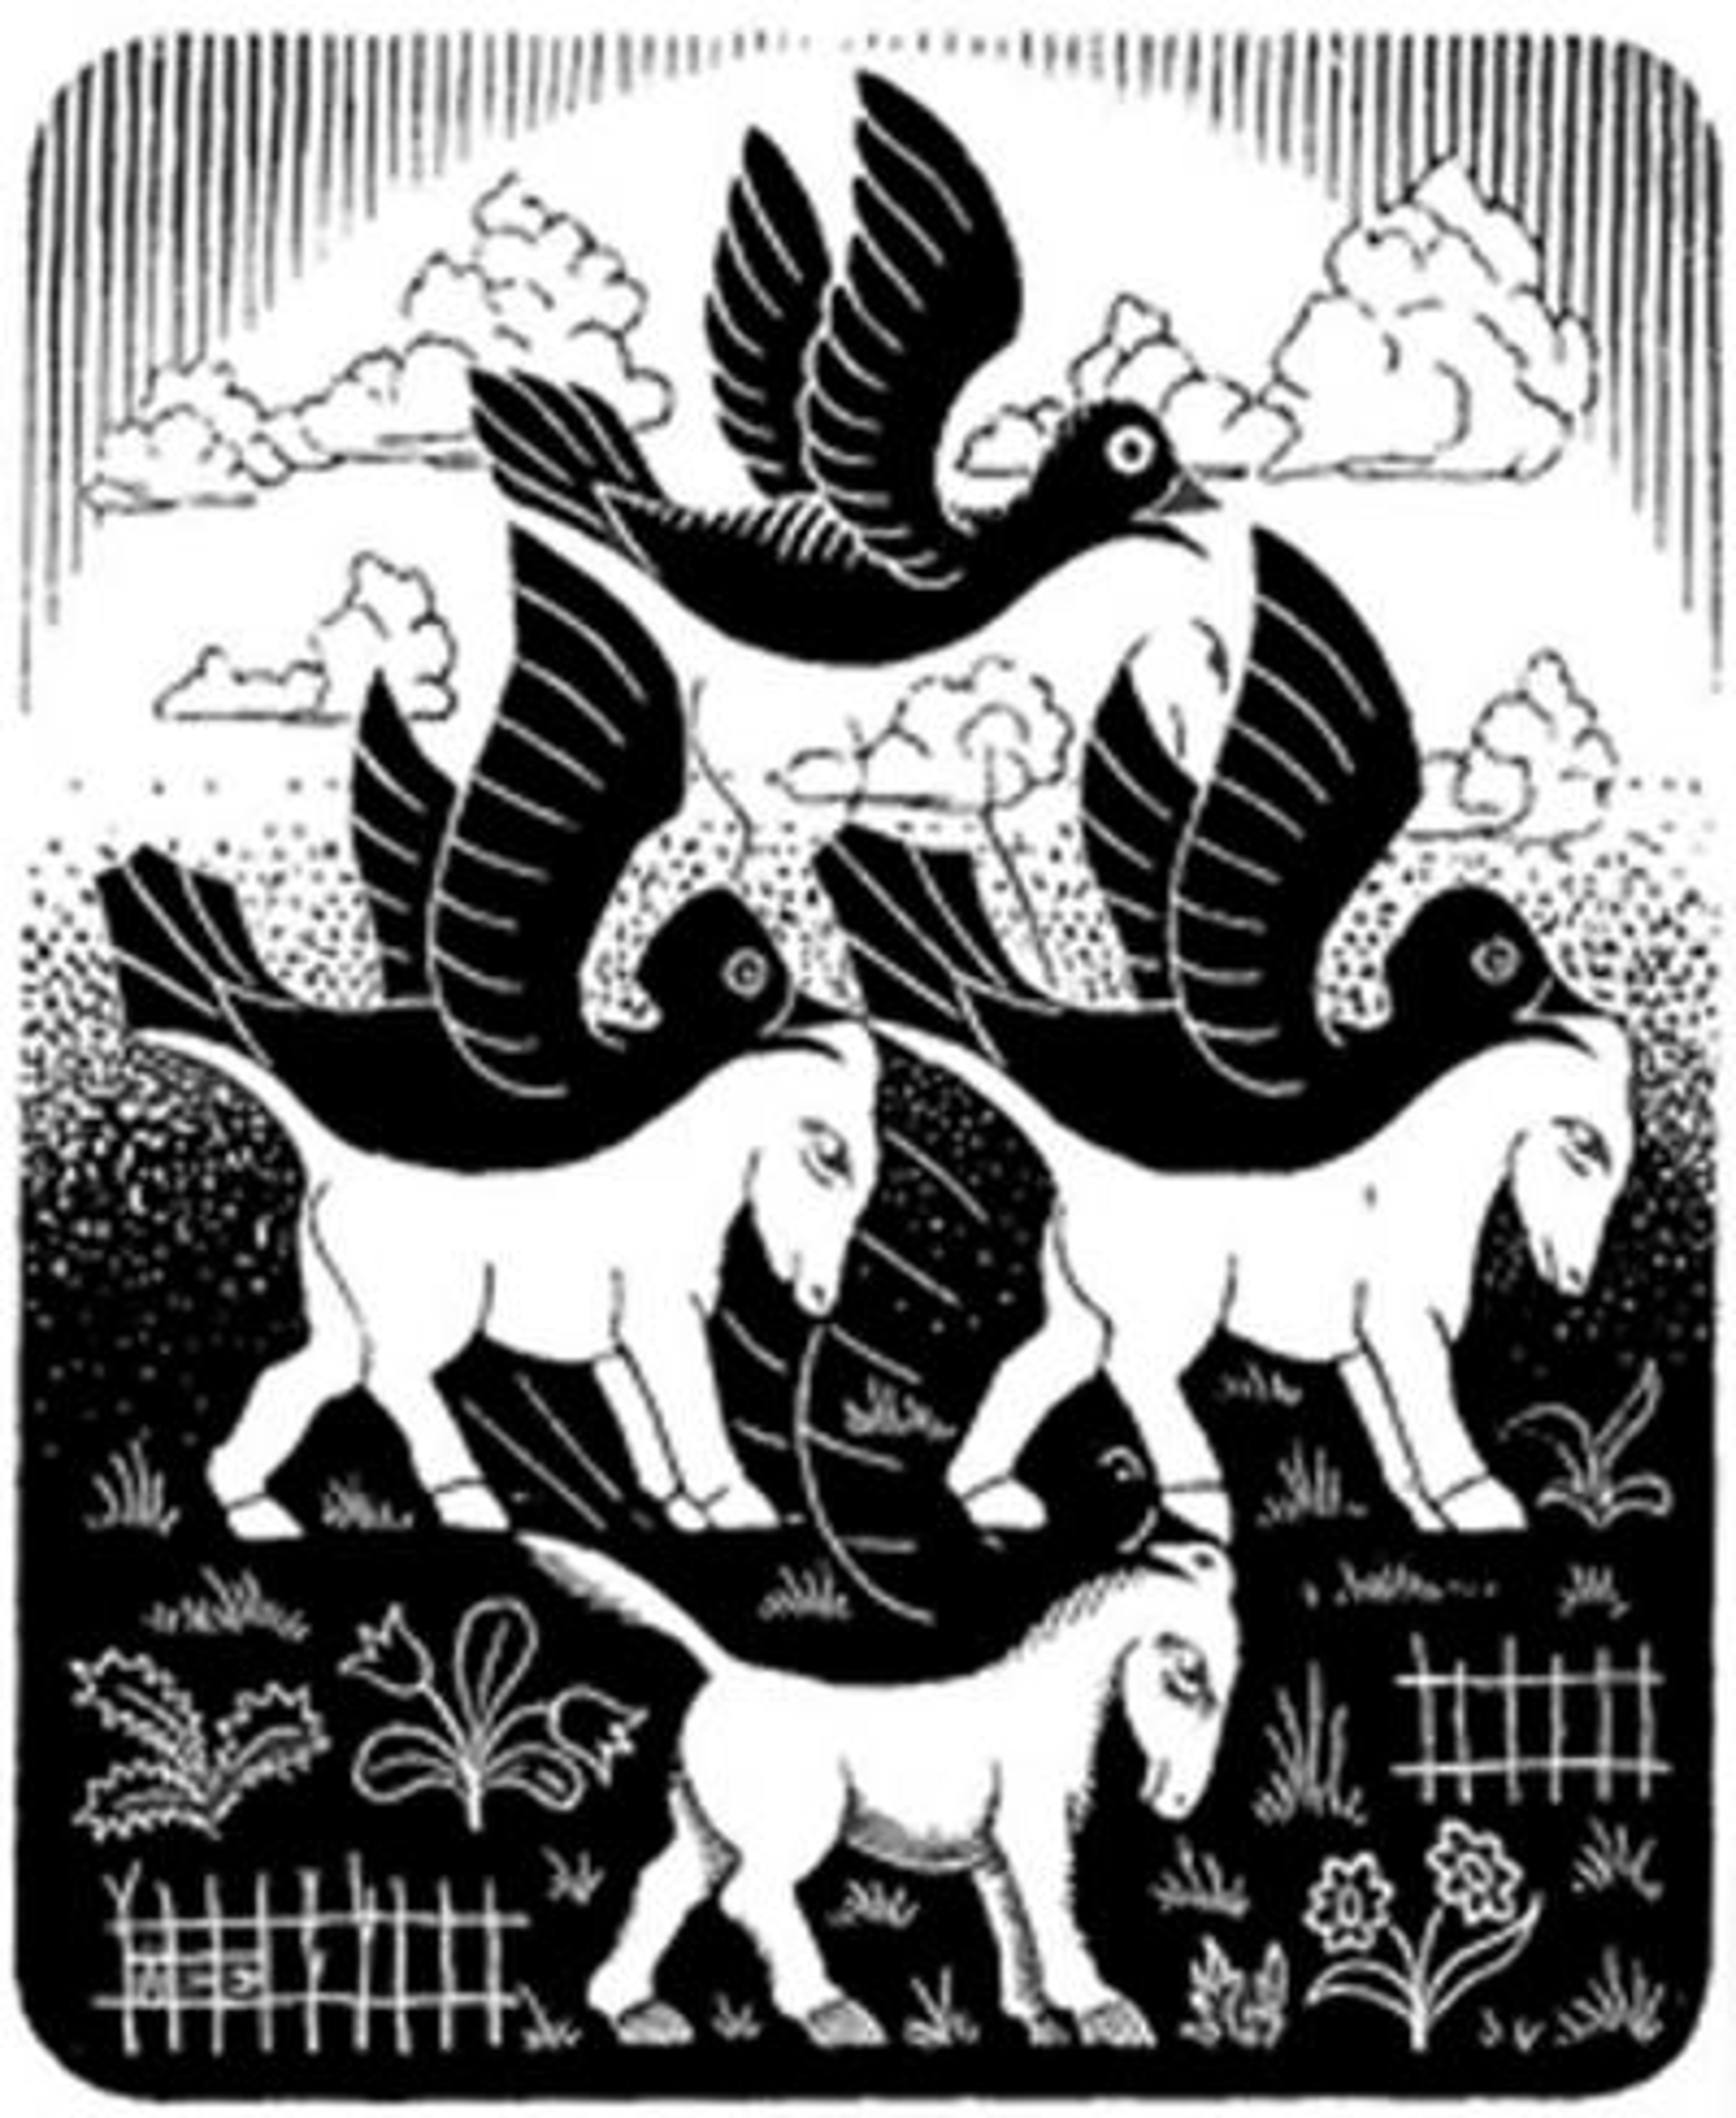 Horses and Birds by M.C. Escher